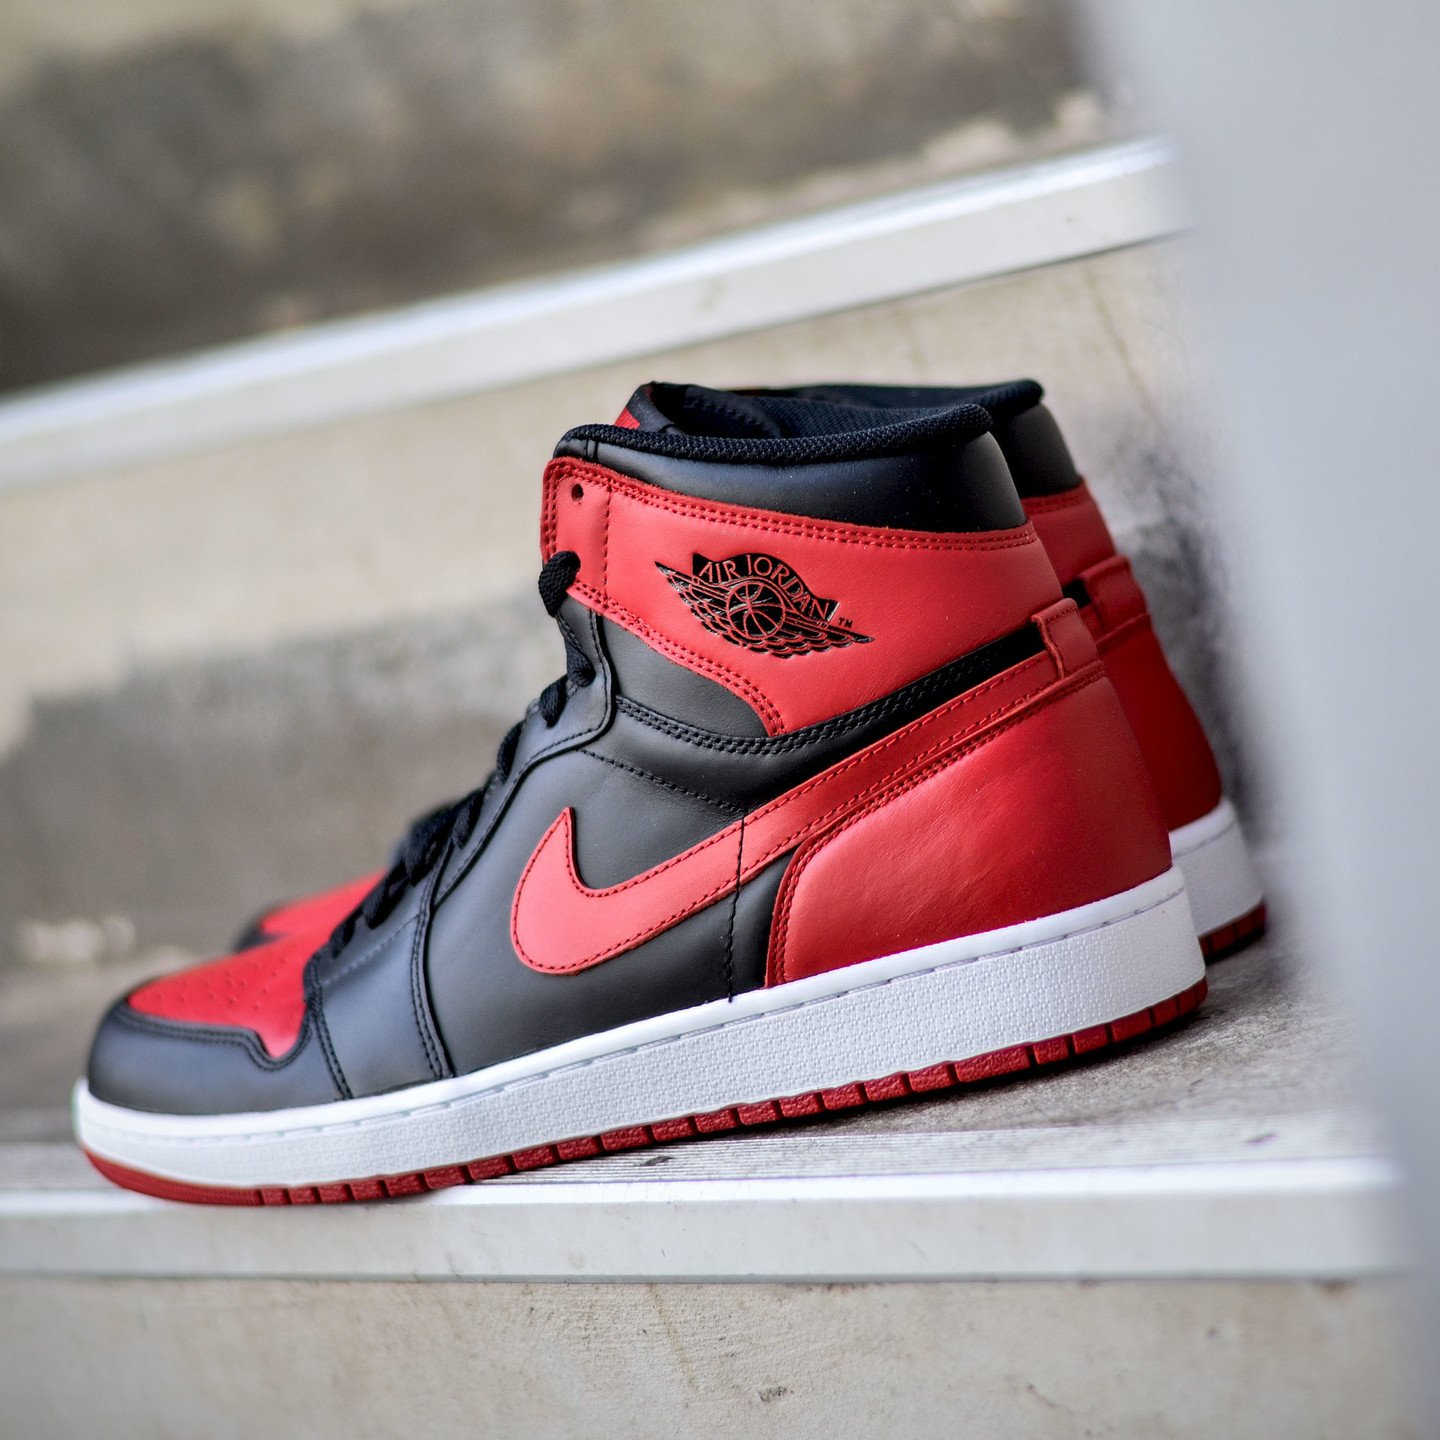 Jordan Air Jordan 1 Retro High OG BG 'Banned' Black / Red 575441-001